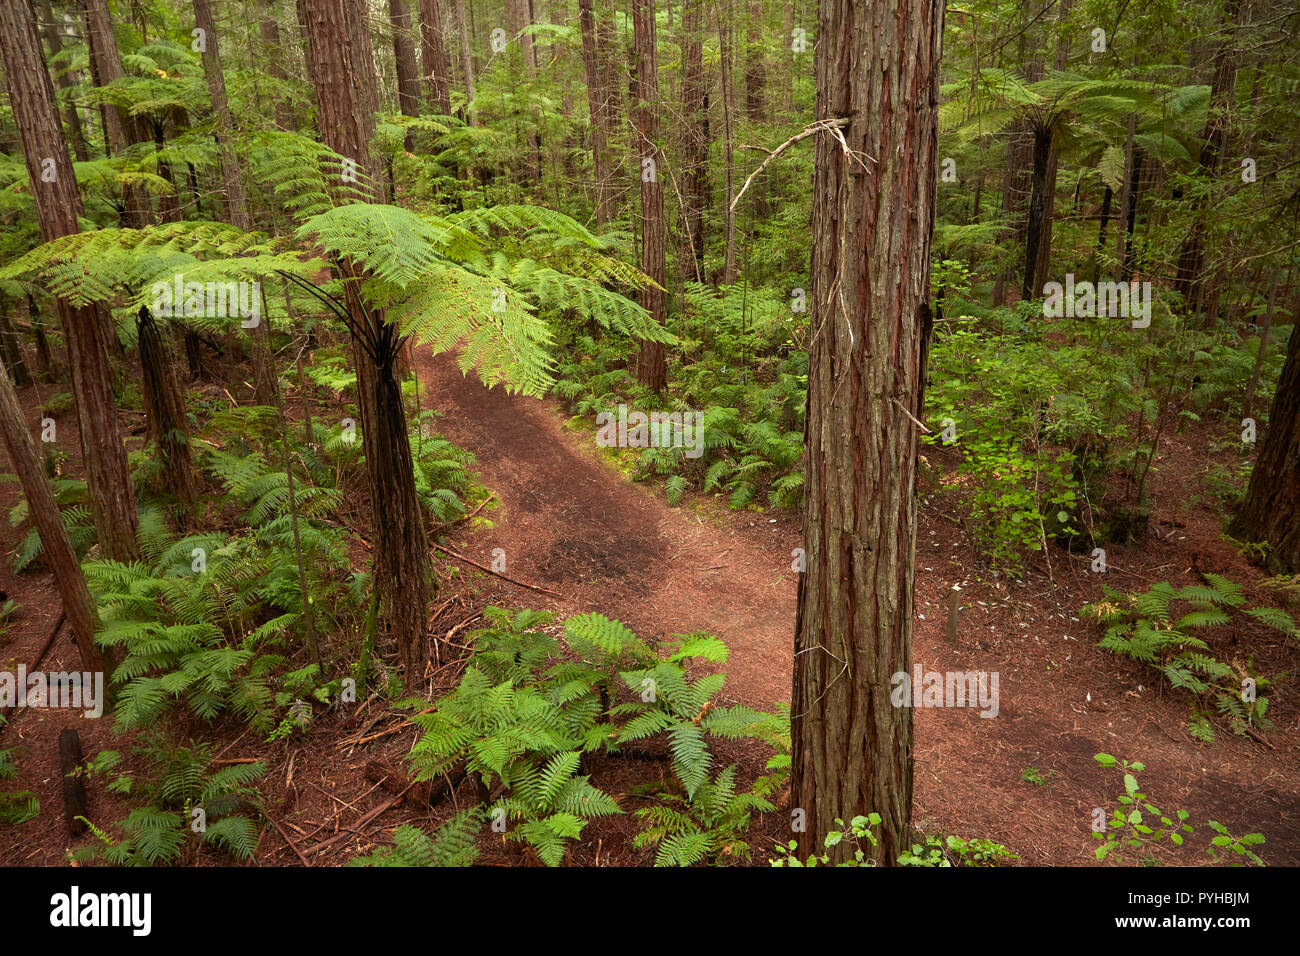 View over redwoods, ferns and walking track, from Redwoods Treewalk at The Redwoods (Whakarewarewa Forest), Rotorua, North Island, New Zealand - Stock Image